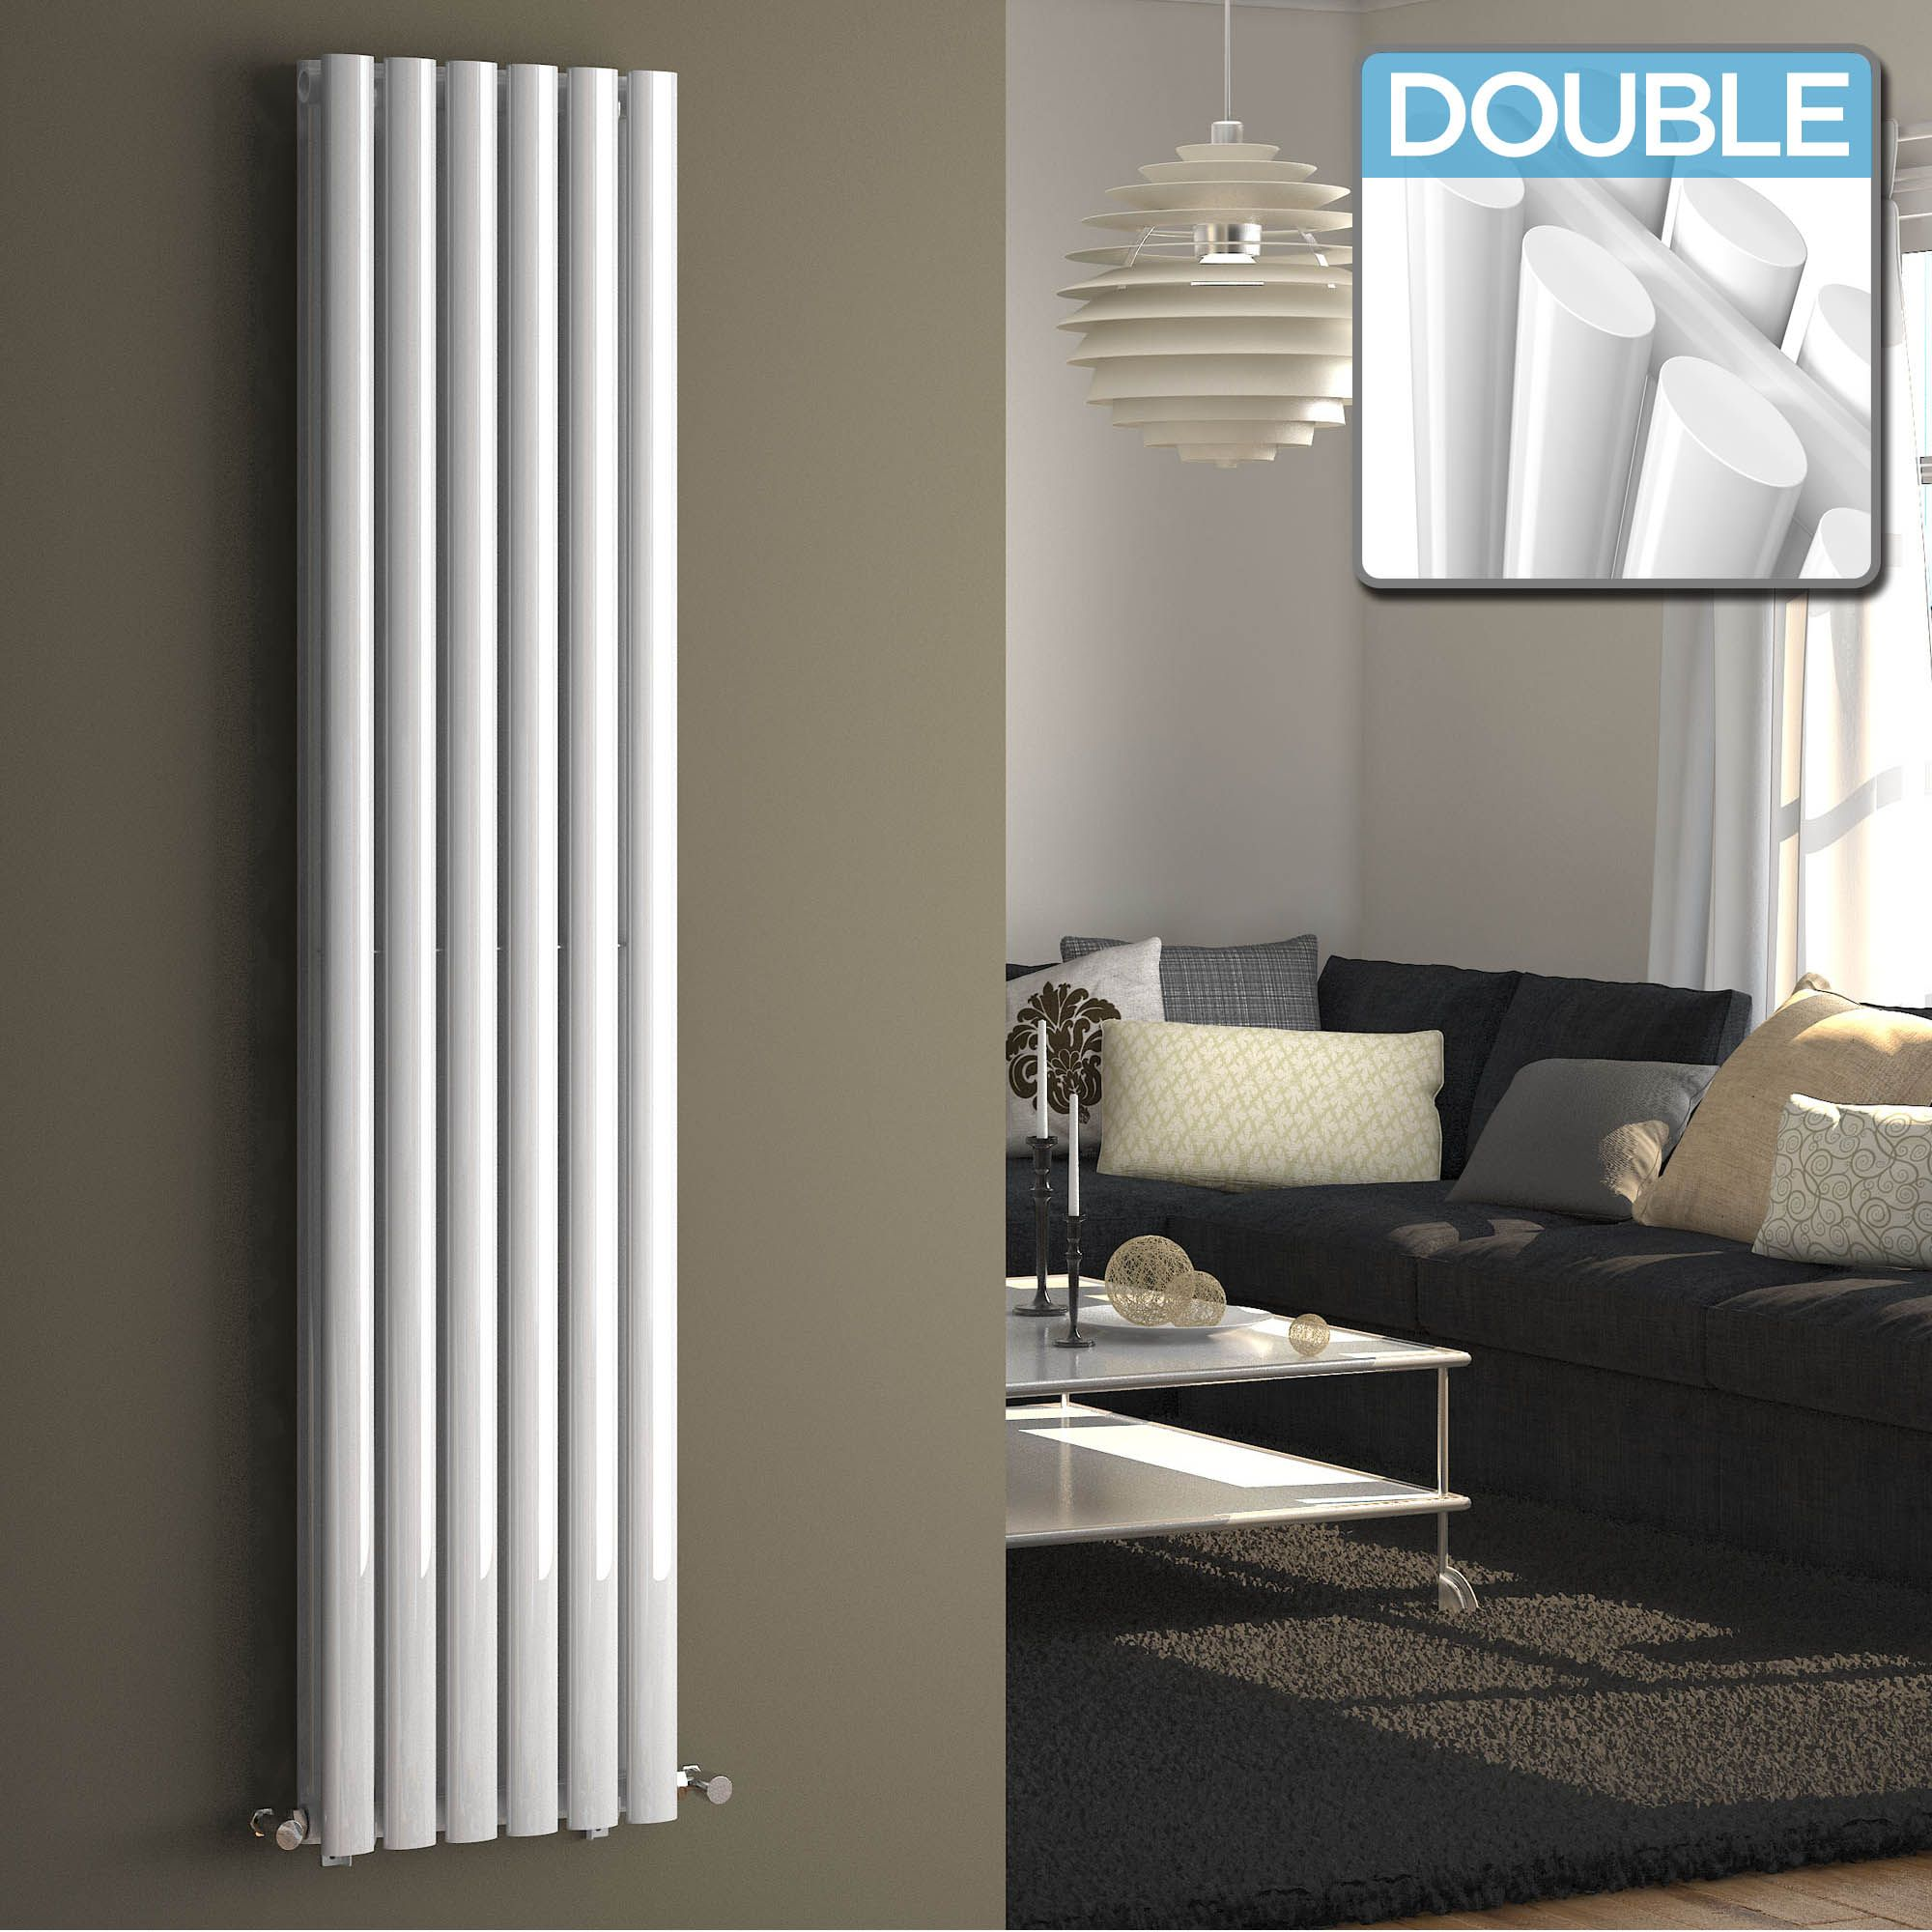 Vertical radiators column radiators tall radiators - Designer vertical radiators for kitchens ...